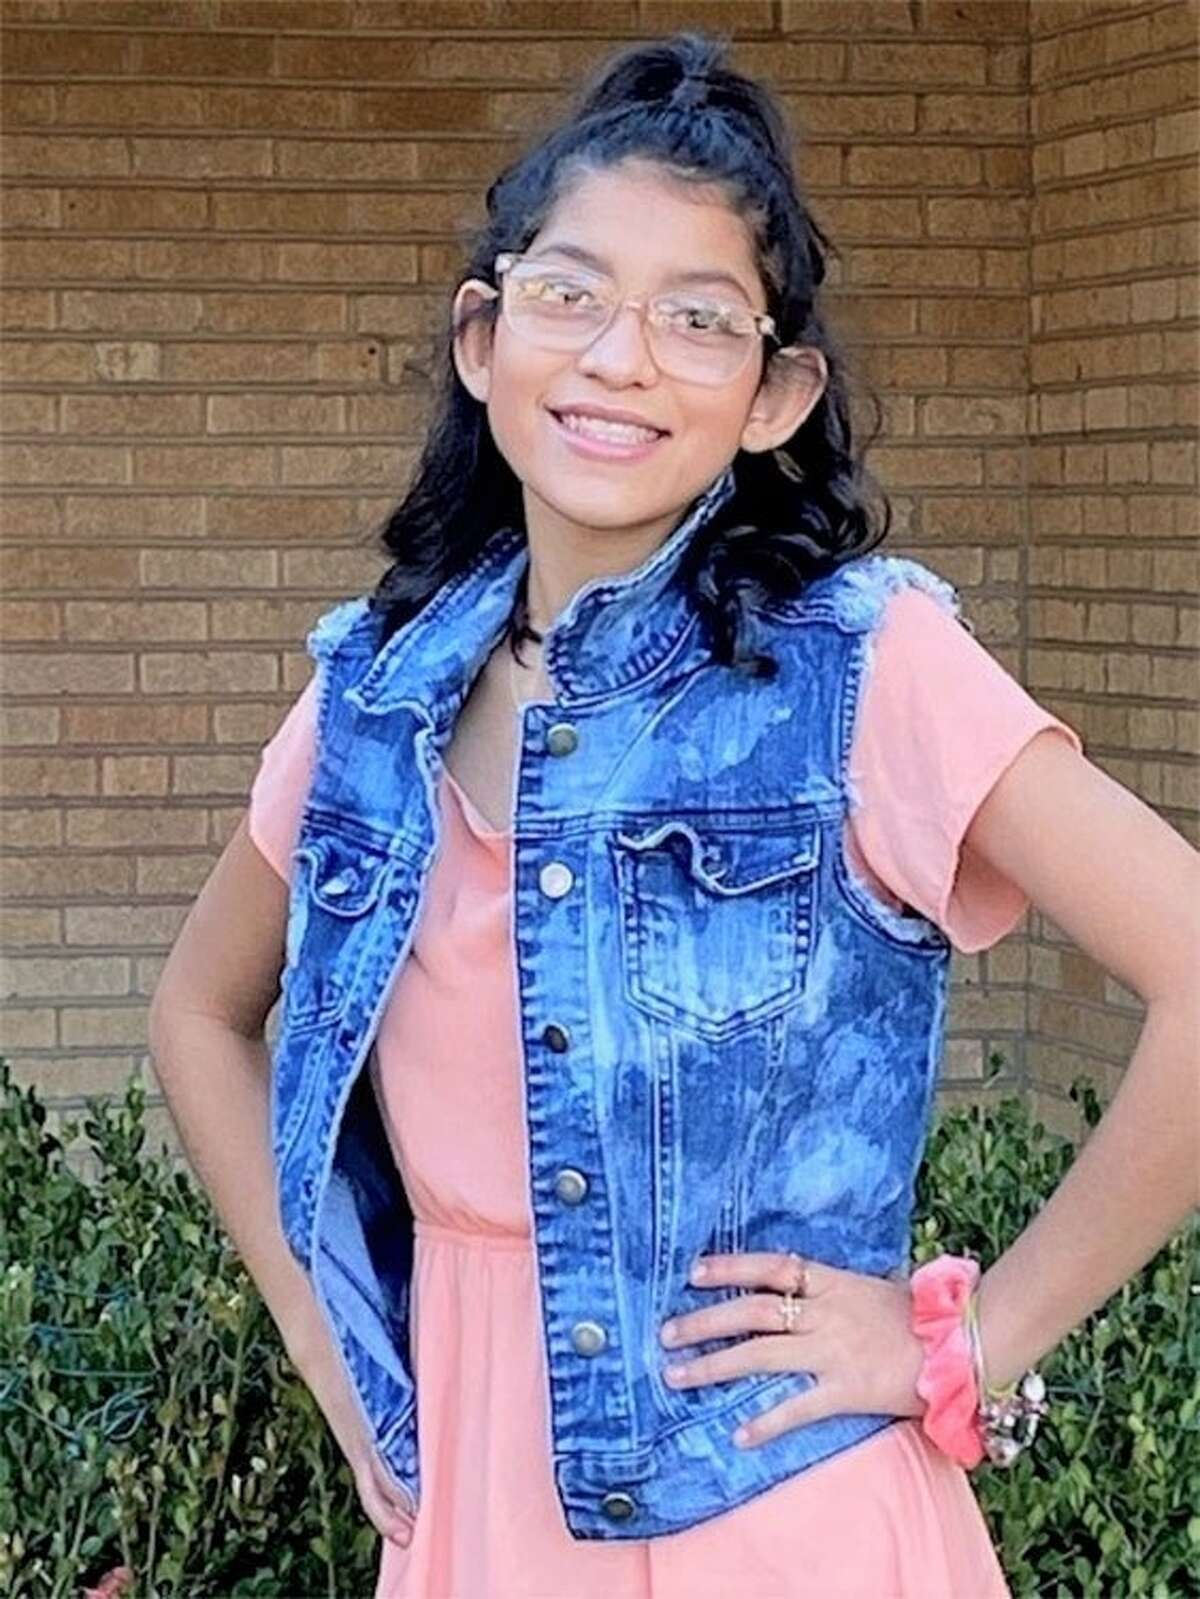 Kiarra is one of the children listed on the Texas Adoption Resource Exchange (TARE) website. Visit https://www.dfps.state.tx.us/Application/TARE/Home.aspx/Default for more details.